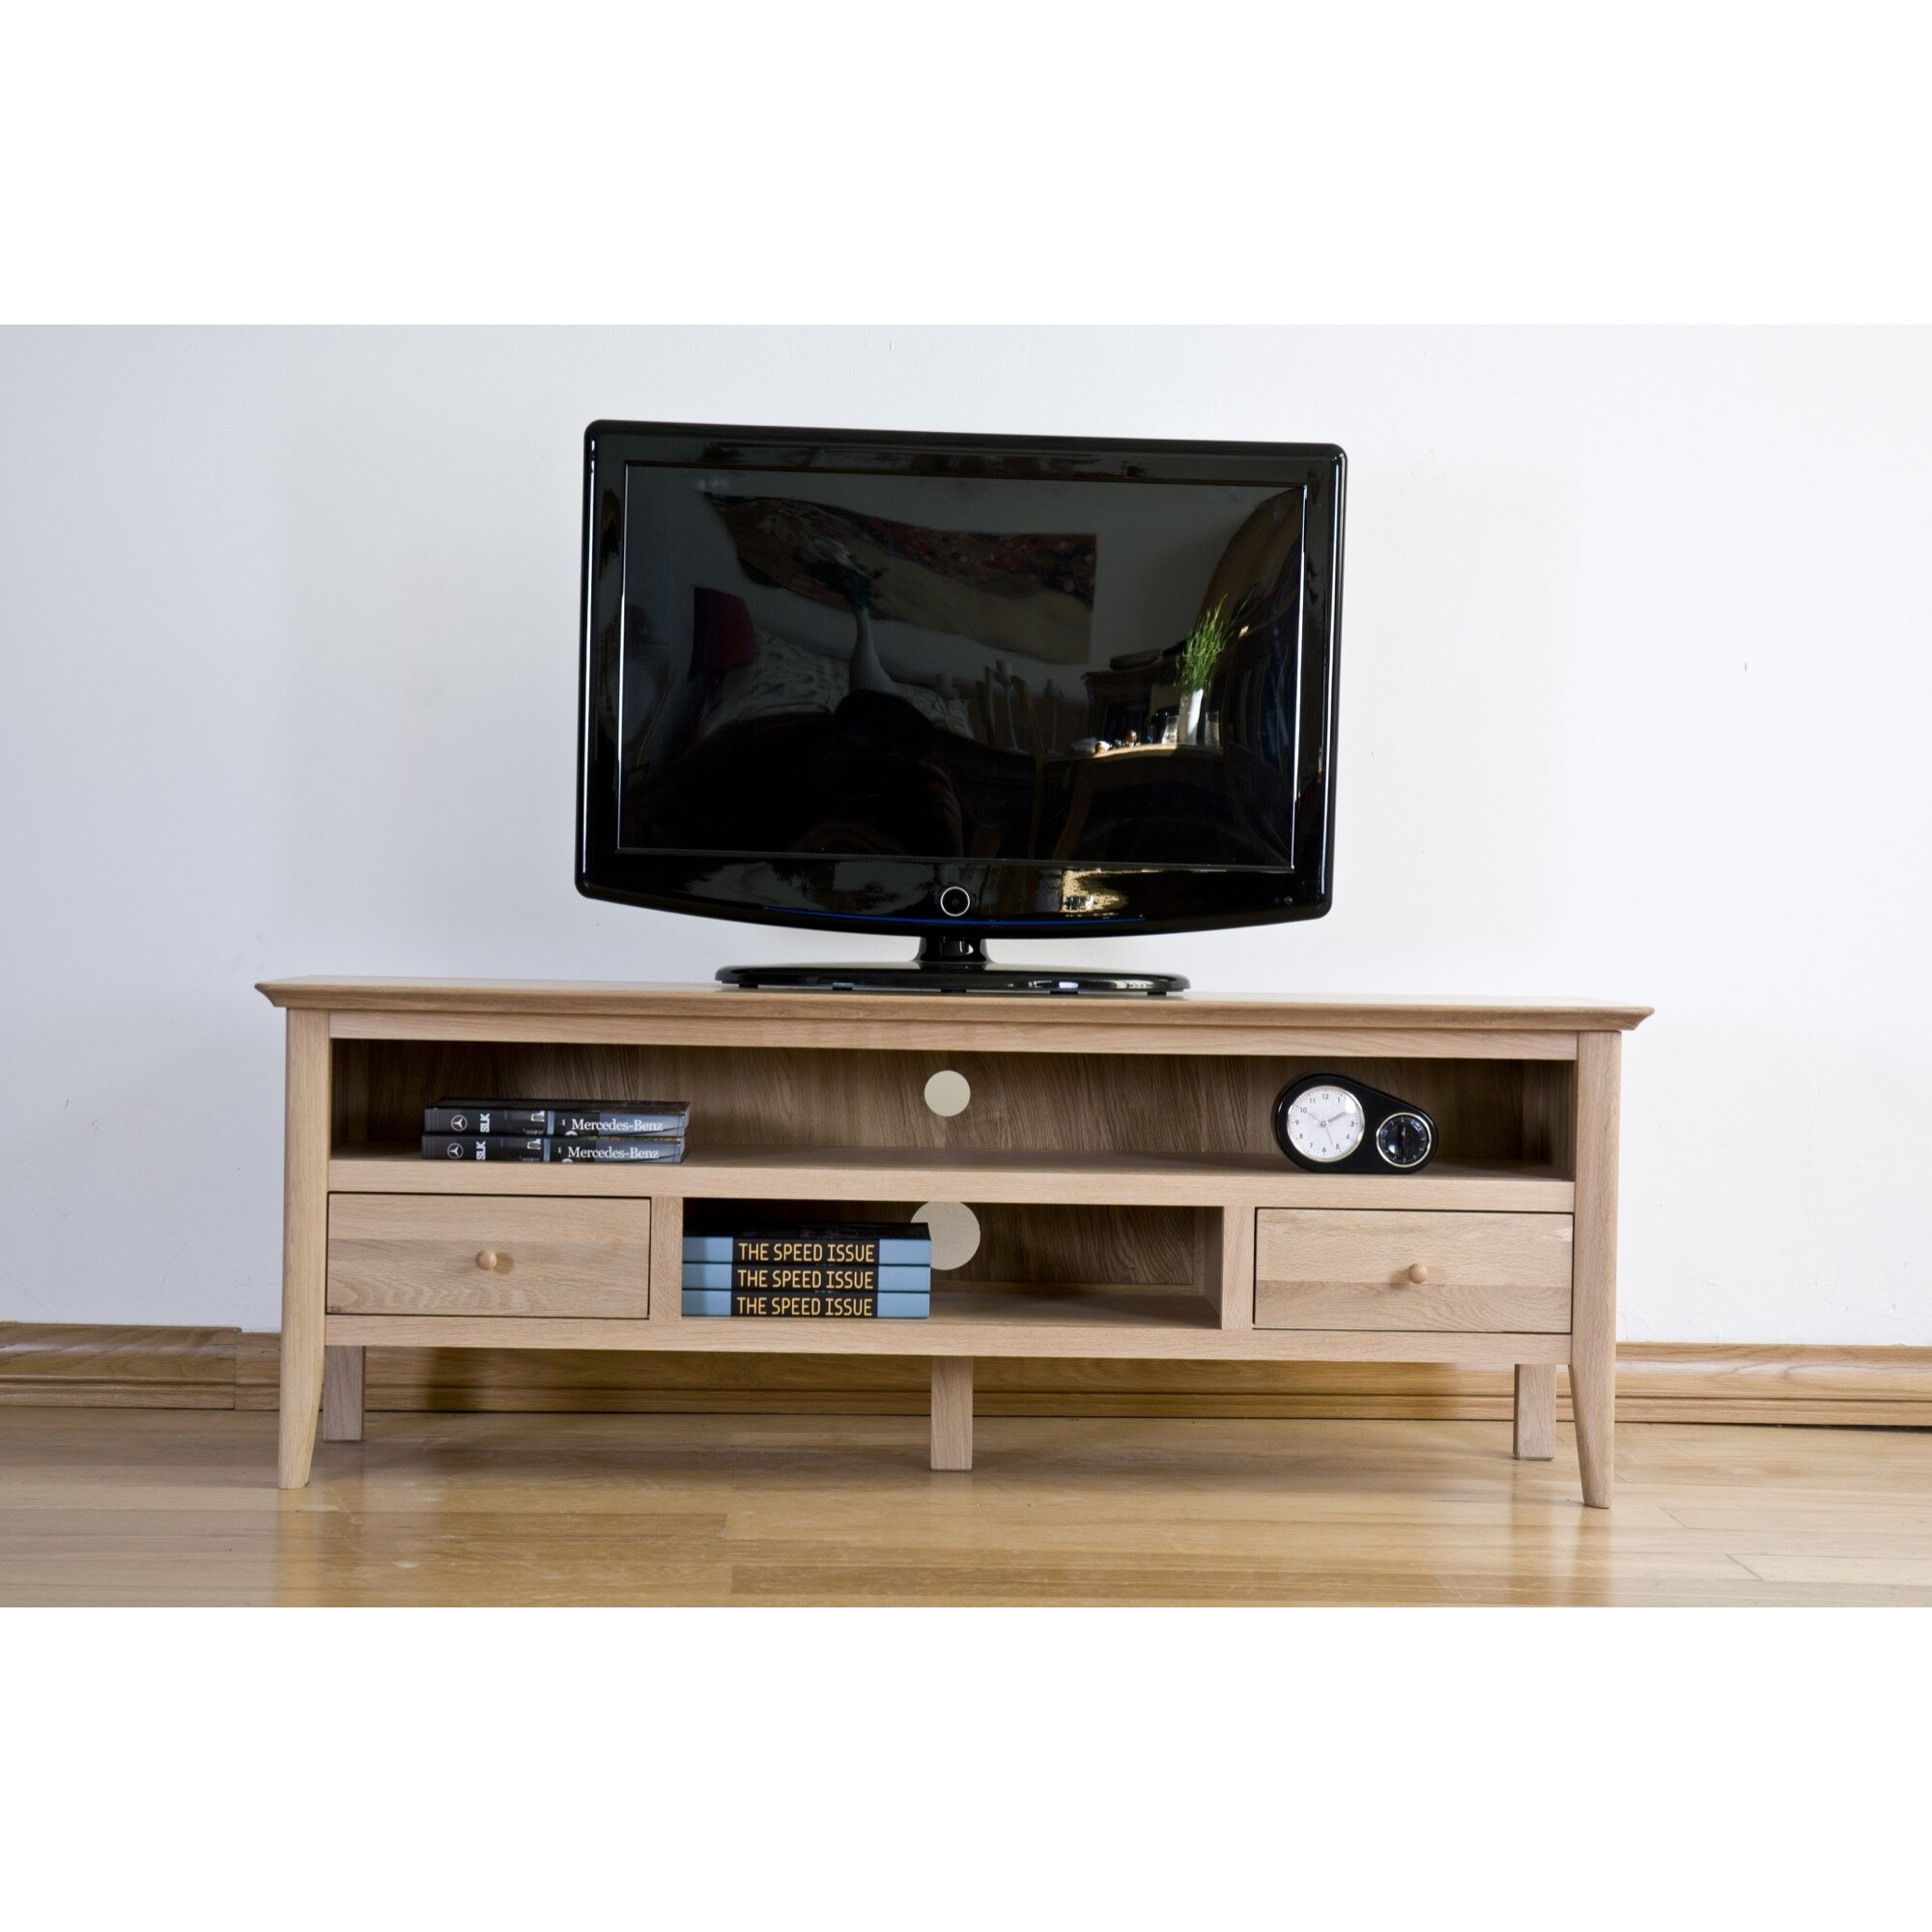 "Homestead Living Tv Stand For Tvs Up To 54""  Wayfair Uk. Small Extractor Fan Kitchen. Small Kitchen Flooring Ideas. Kitchen Island Freestanding. White Kitchen Cabinets With Brown Walls. Kitchen Islands To Buy. Wood Floor Ideas For Kitchens. Island Bench Kitchen Designs. Knobs For White Kitchen Cabinets"